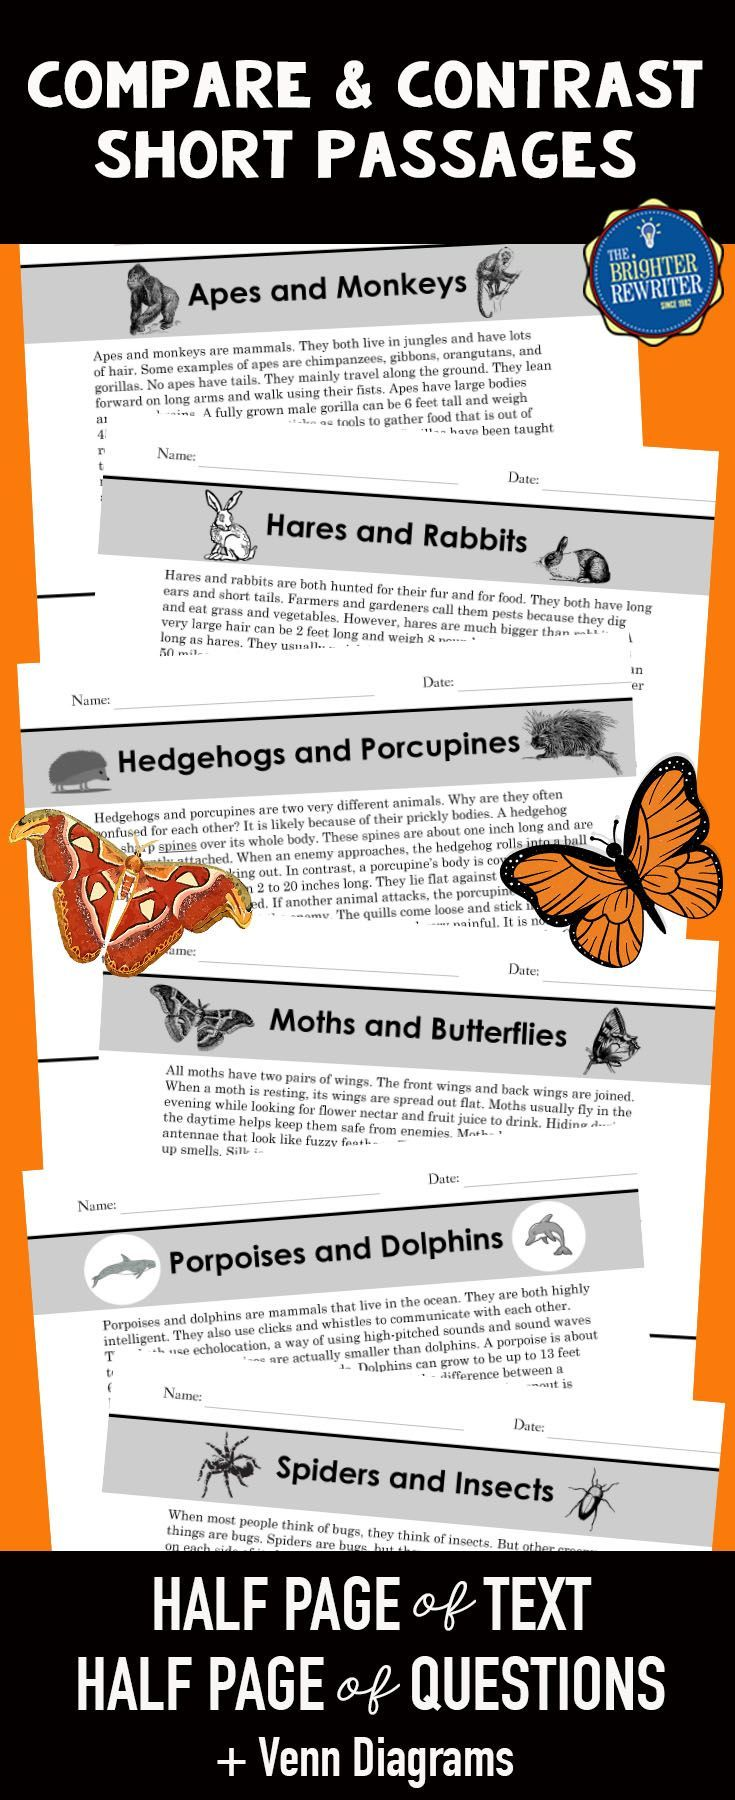 6 compare and contrast nonfiction mini-passages about animals, each featuring informational text and 4 multiple-choice comprehension questions on one page. The questions include a variety of reading skills and are modeled after the types of questions on standardized reading tests. The last two questions of each passage are about similarities and differences. Venn diagrams for each passage also included. Great for 3rd-5th!